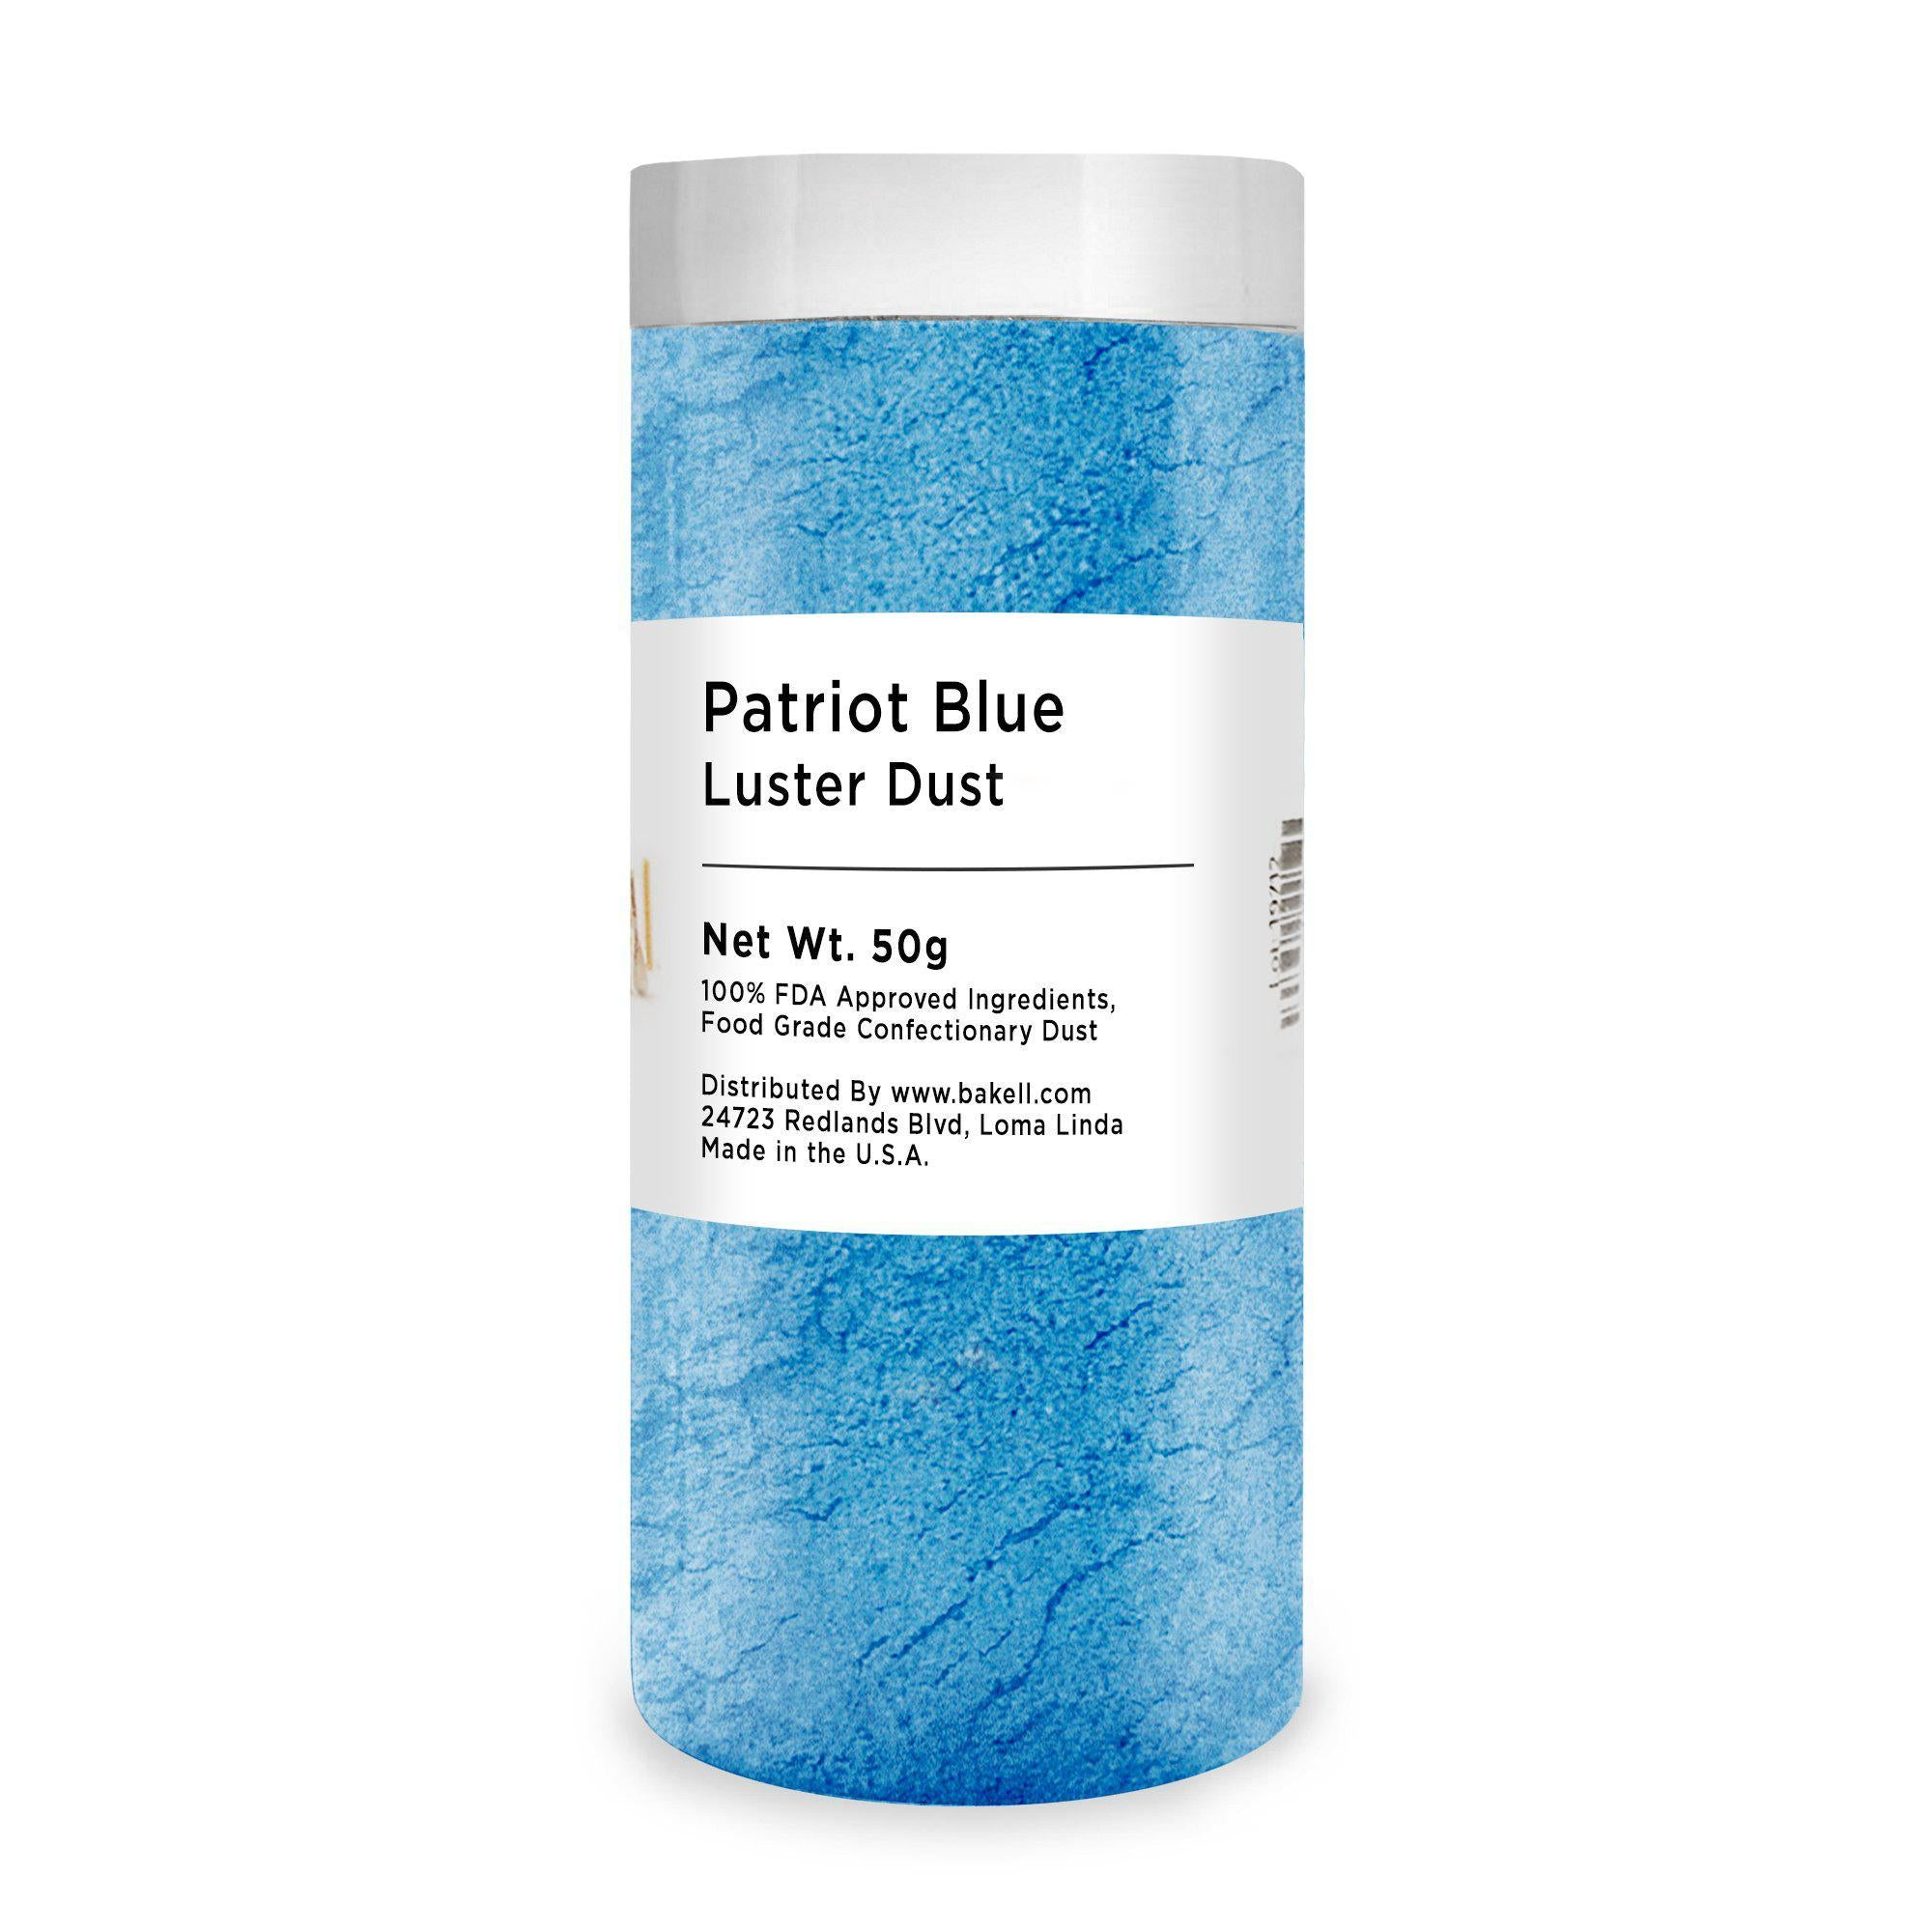 Patriot Blue Edible Luster Dust & Edible Paint | FDA Approved | Kosher Certified | Bakell® #1 site for FDA Compliant edible glitter & edible dust | Bakell.com